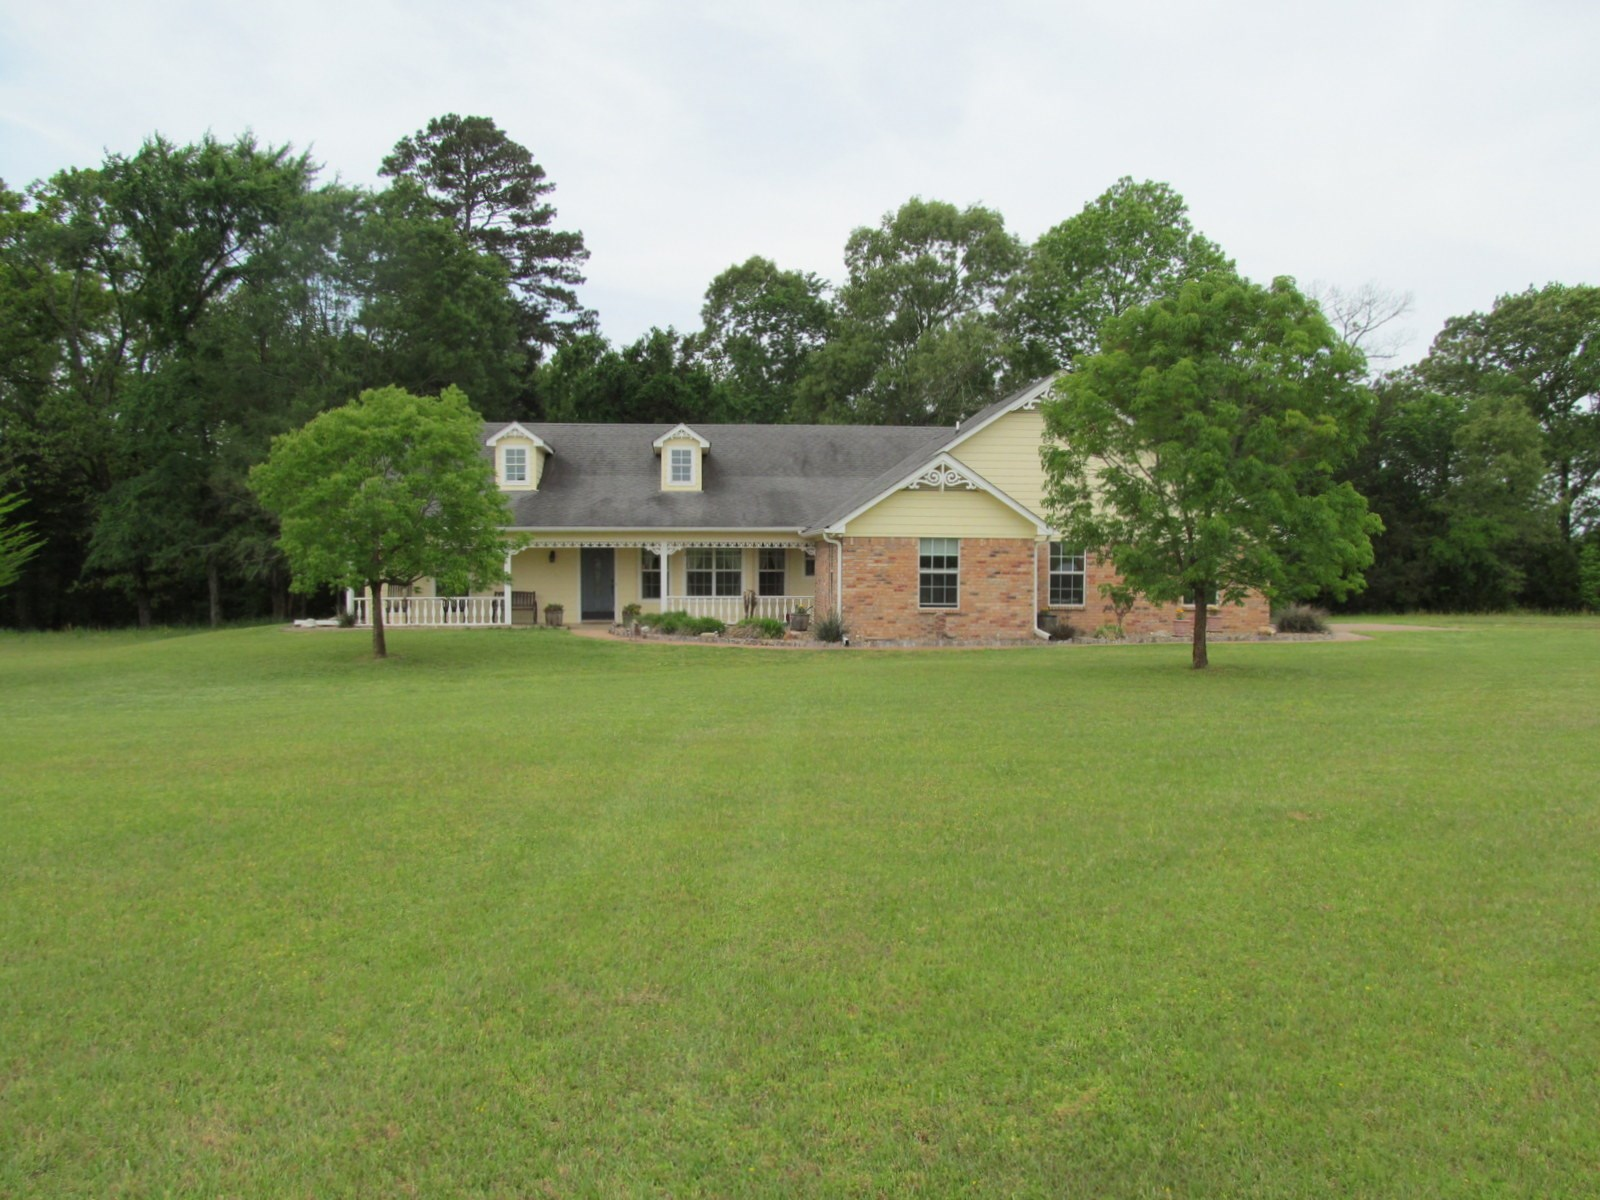 EAST TEXAS COUNTRY HOME ON 23 ACRES - 2 PONDS - 40X60 SHOP